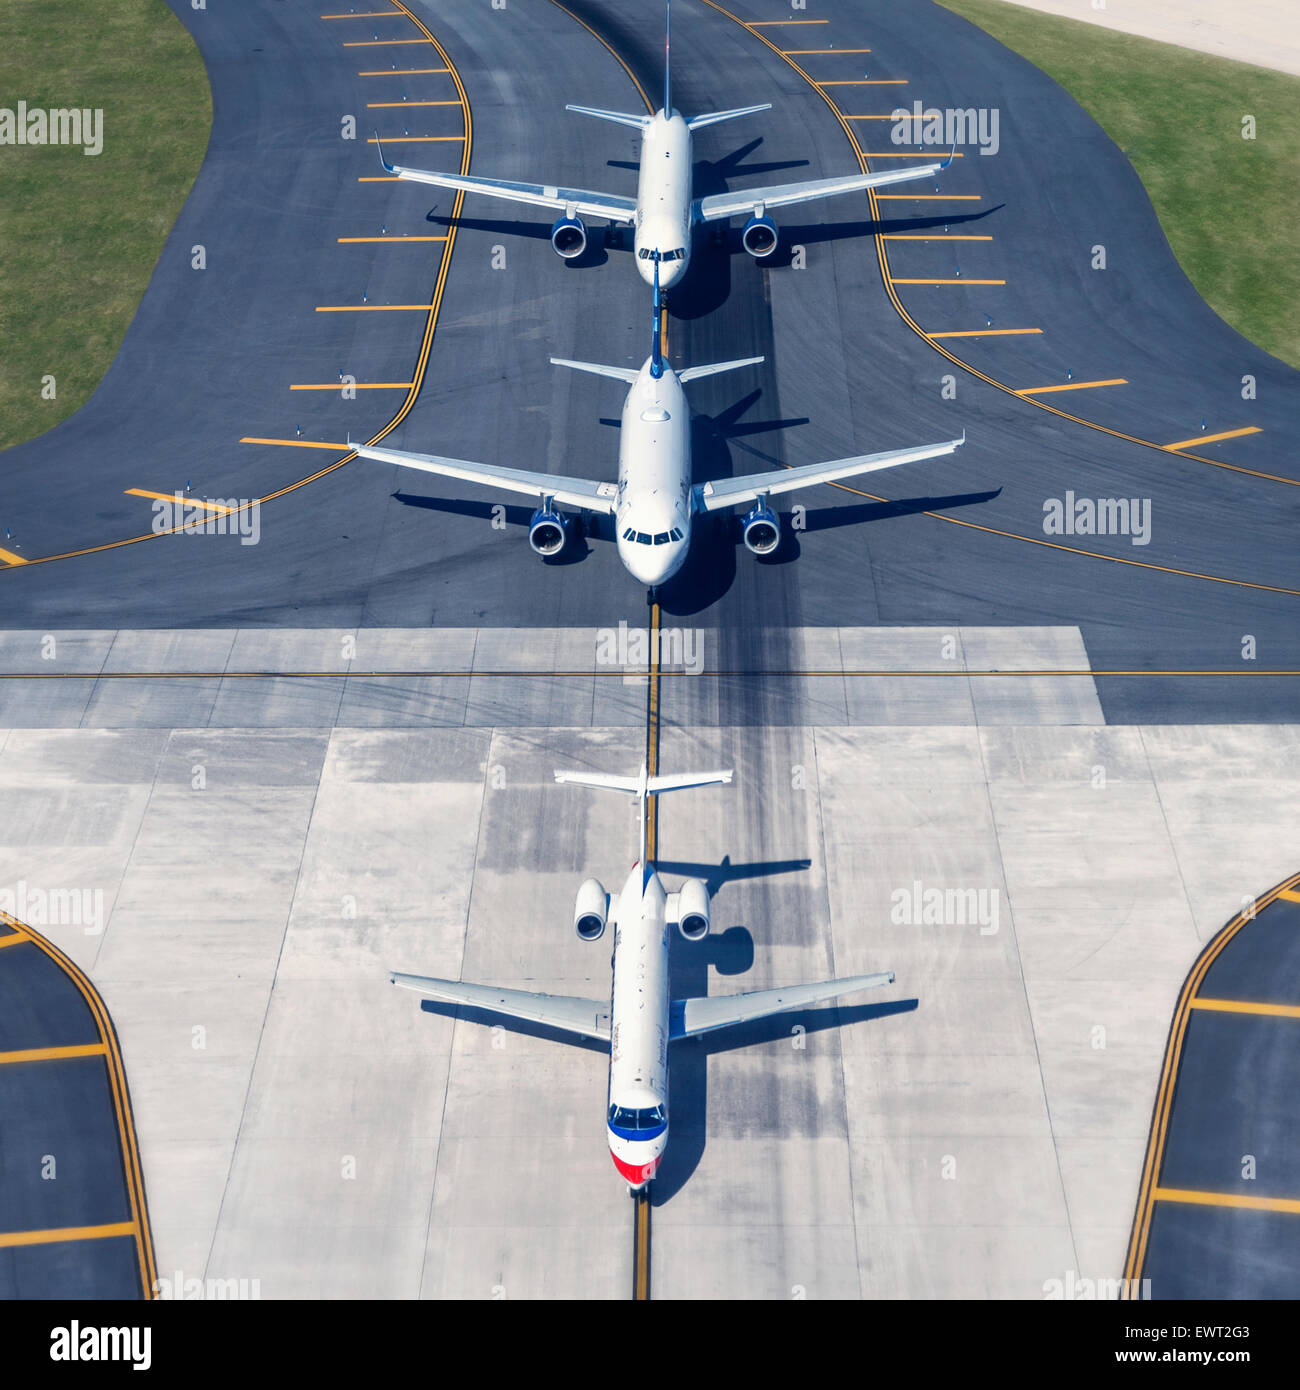 Airplanes on runway in line waiting to take-off. - Stock Image